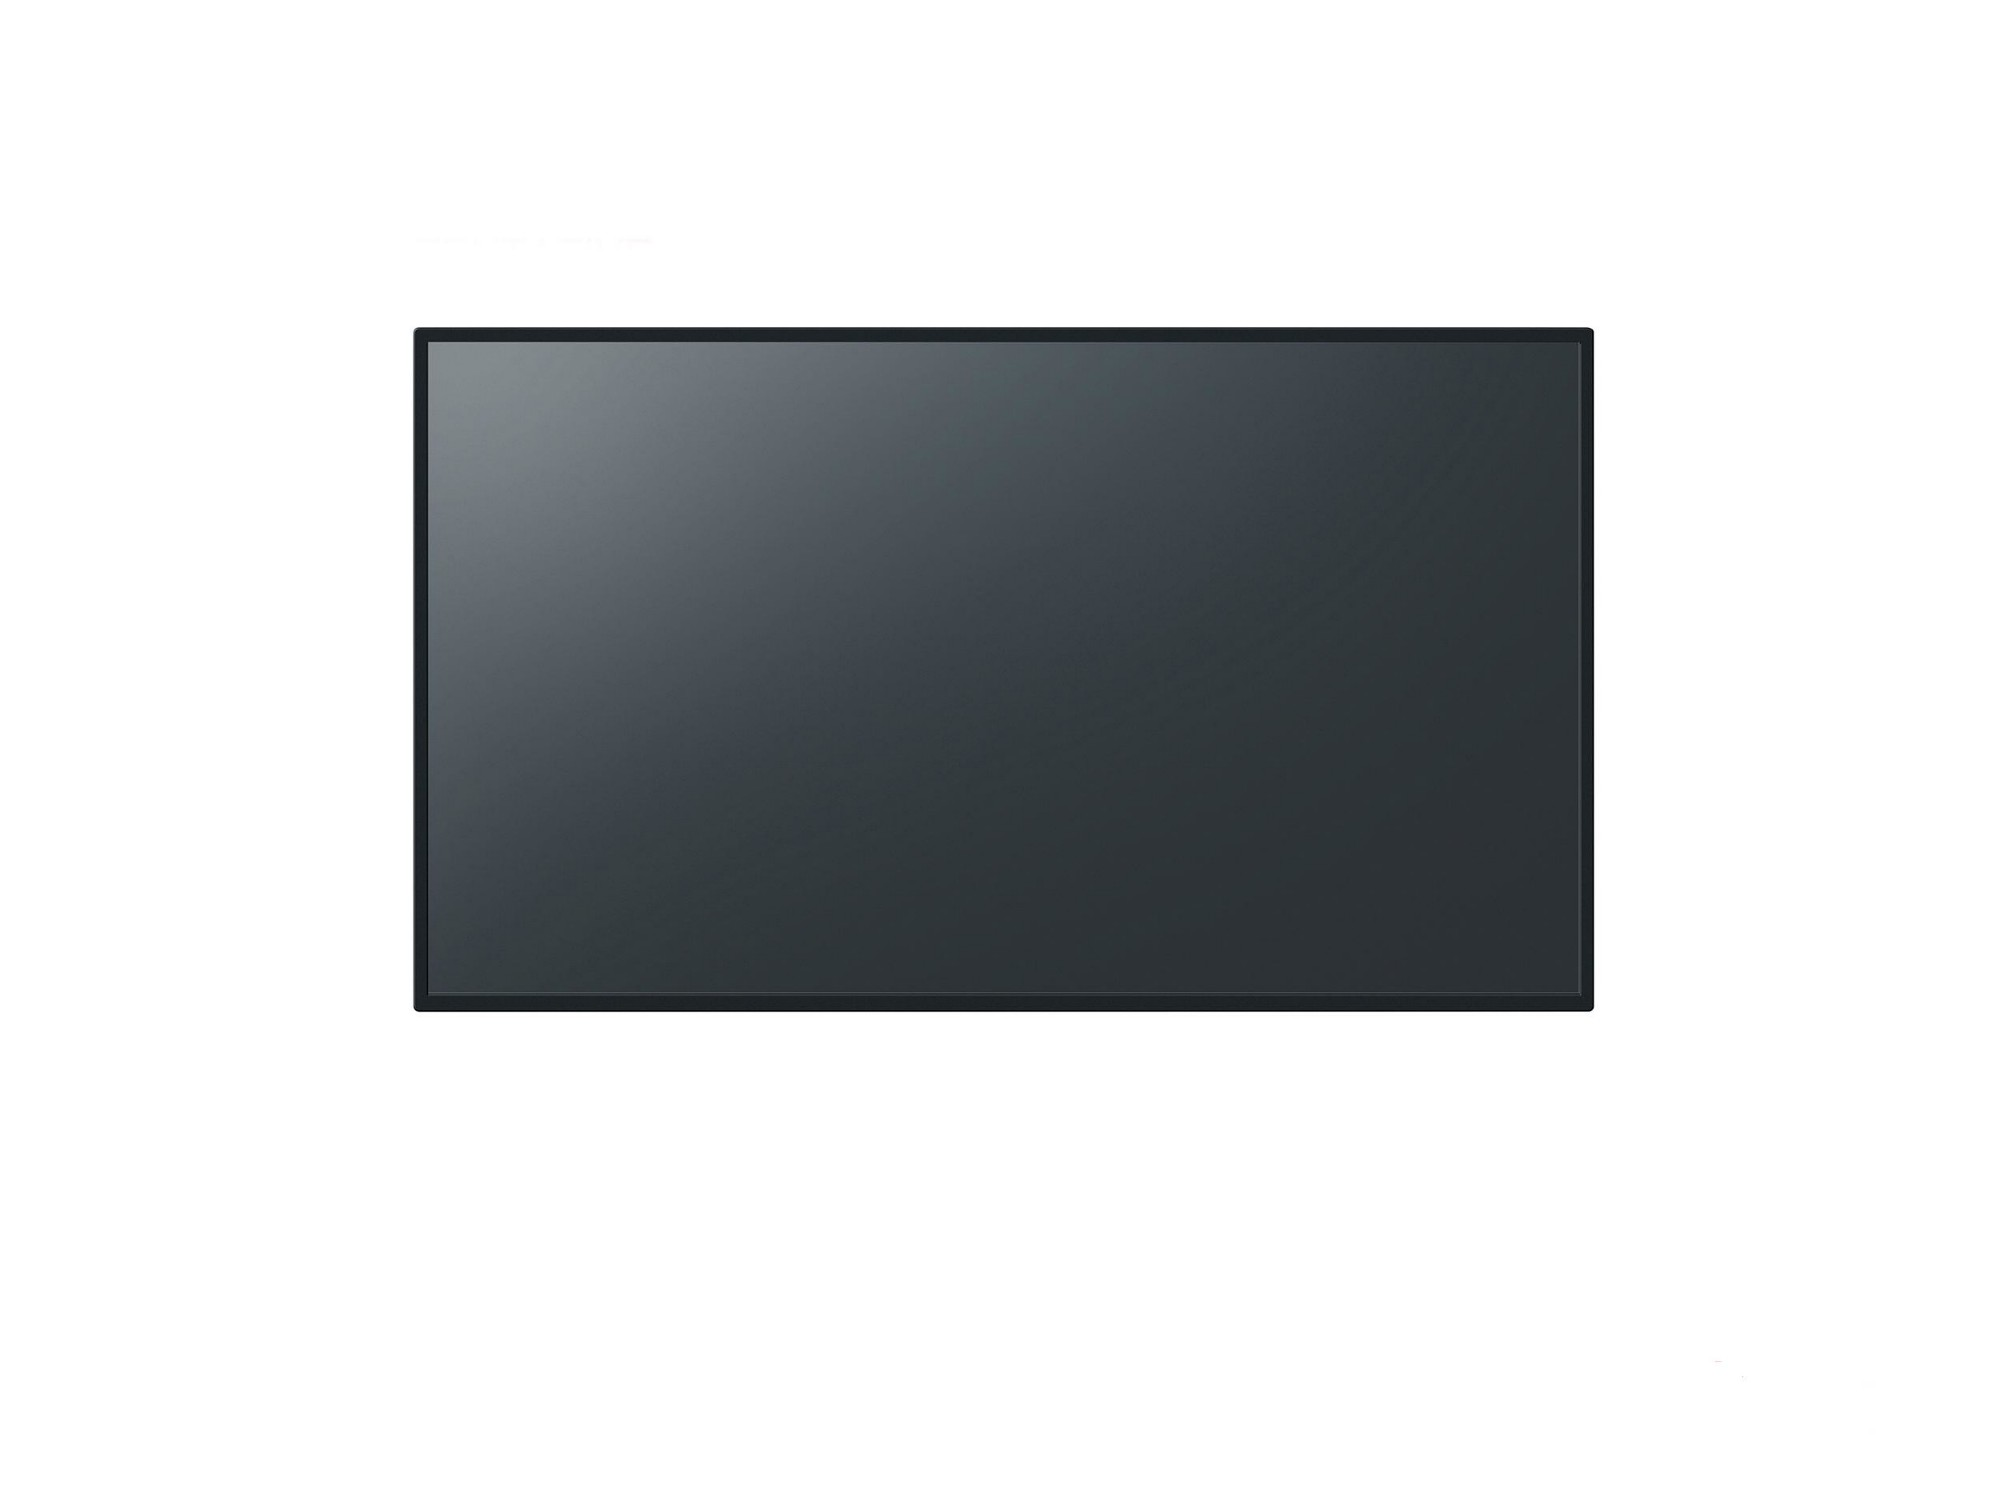 PANASONIC TH-43LFE8E DIGITAL SIGNAGE FLAT PANEL 43